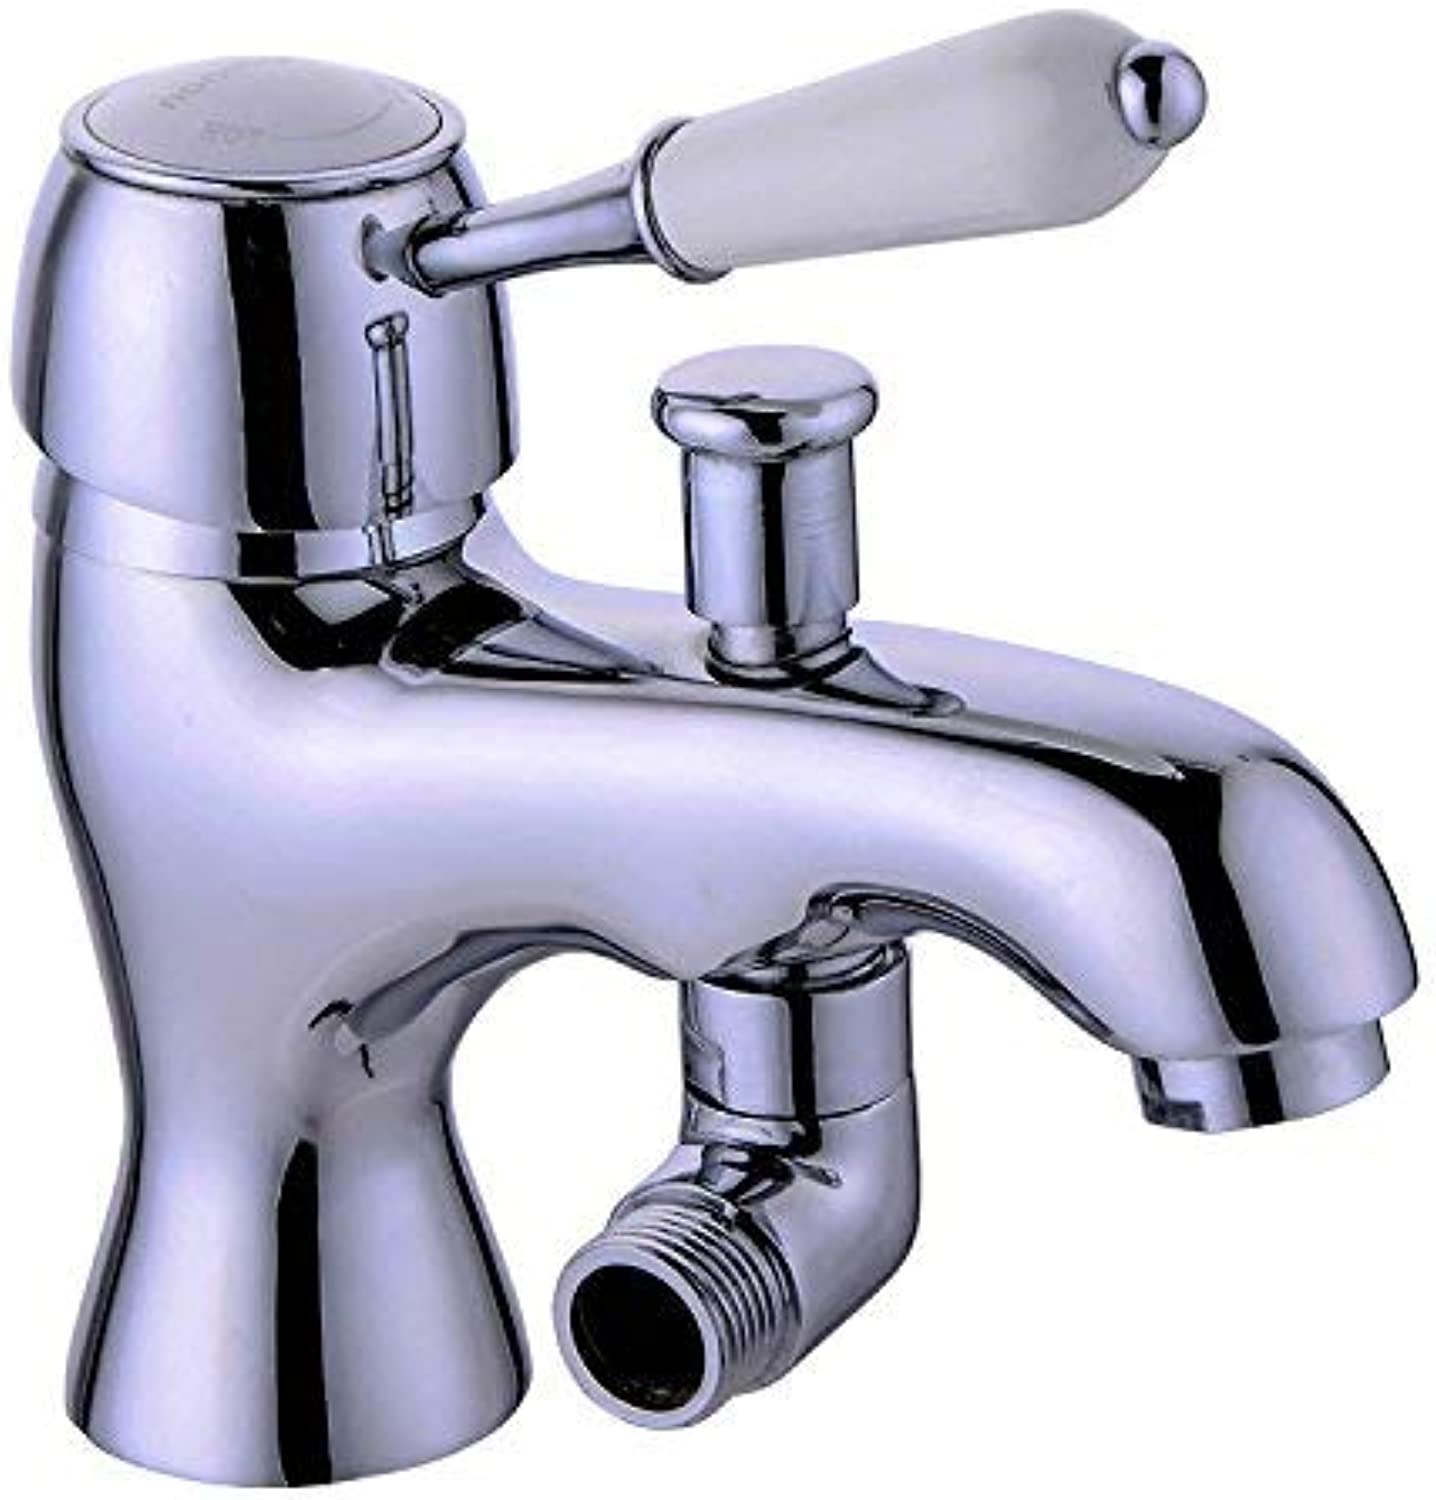 Oudan Bathroom basin faucet hot and cold water mixer faucet Elbow with hot and cold of the tap